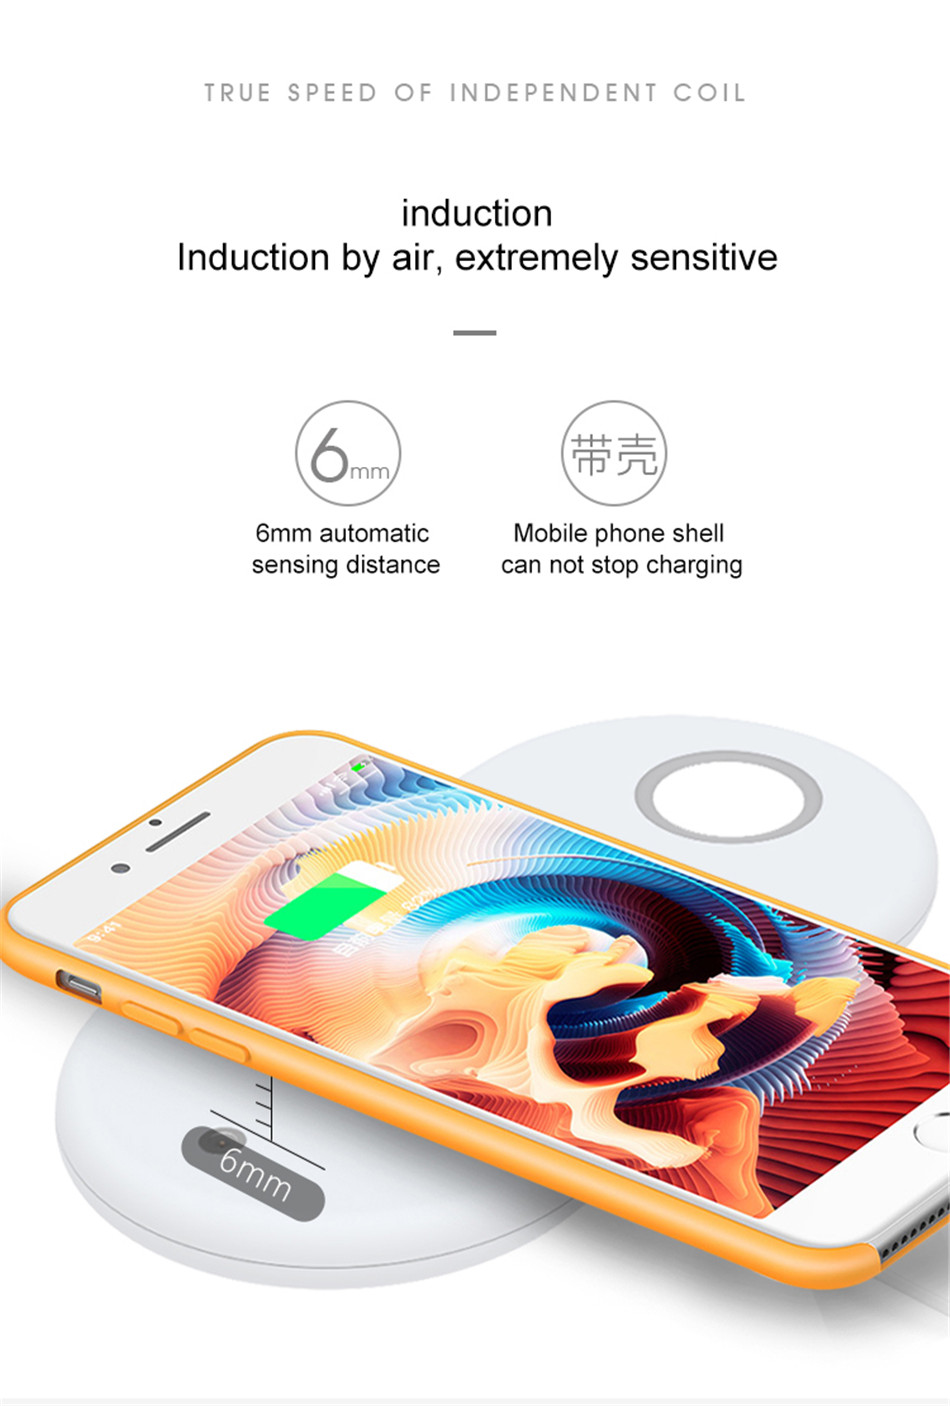 !ACCEZZ 10W 7.5 Fast Wireless Charger 3 in 1 For iphone 8 Plus X For Apple AirPods For Samsung S7 S8 S9 Mobile Phone Chargers (10)